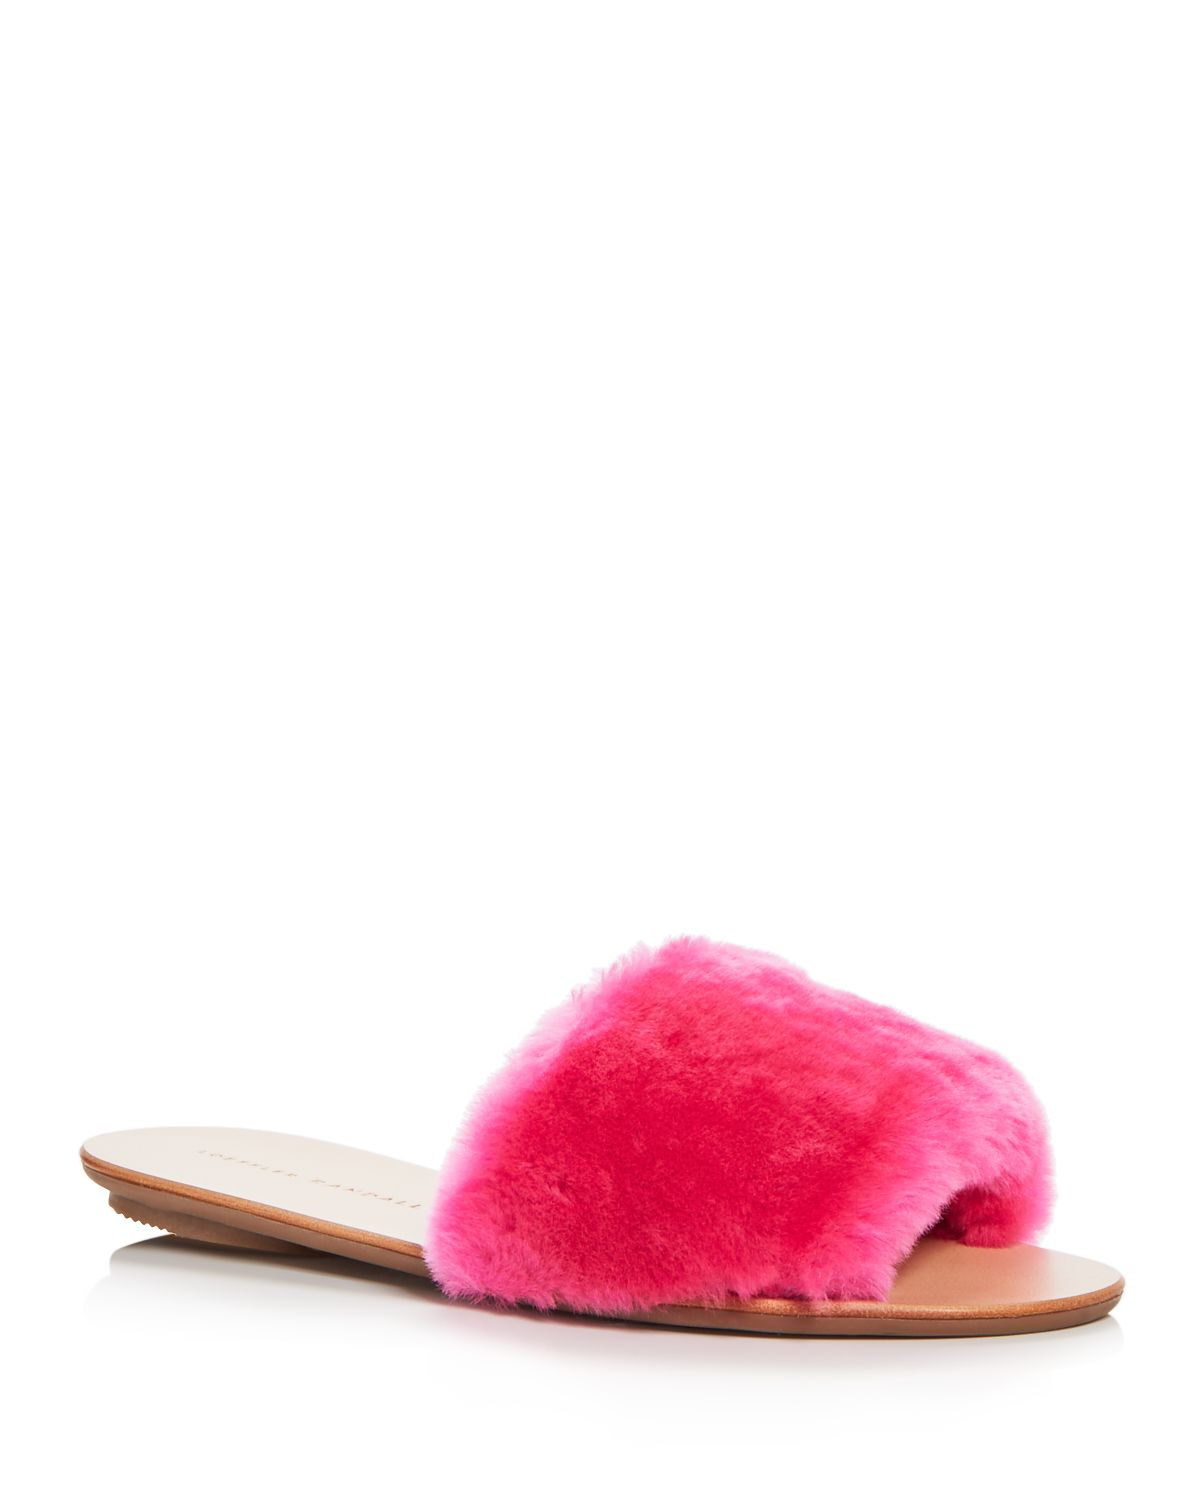 Loeffler Randall Women's Isabel Shearling Slide Sandals